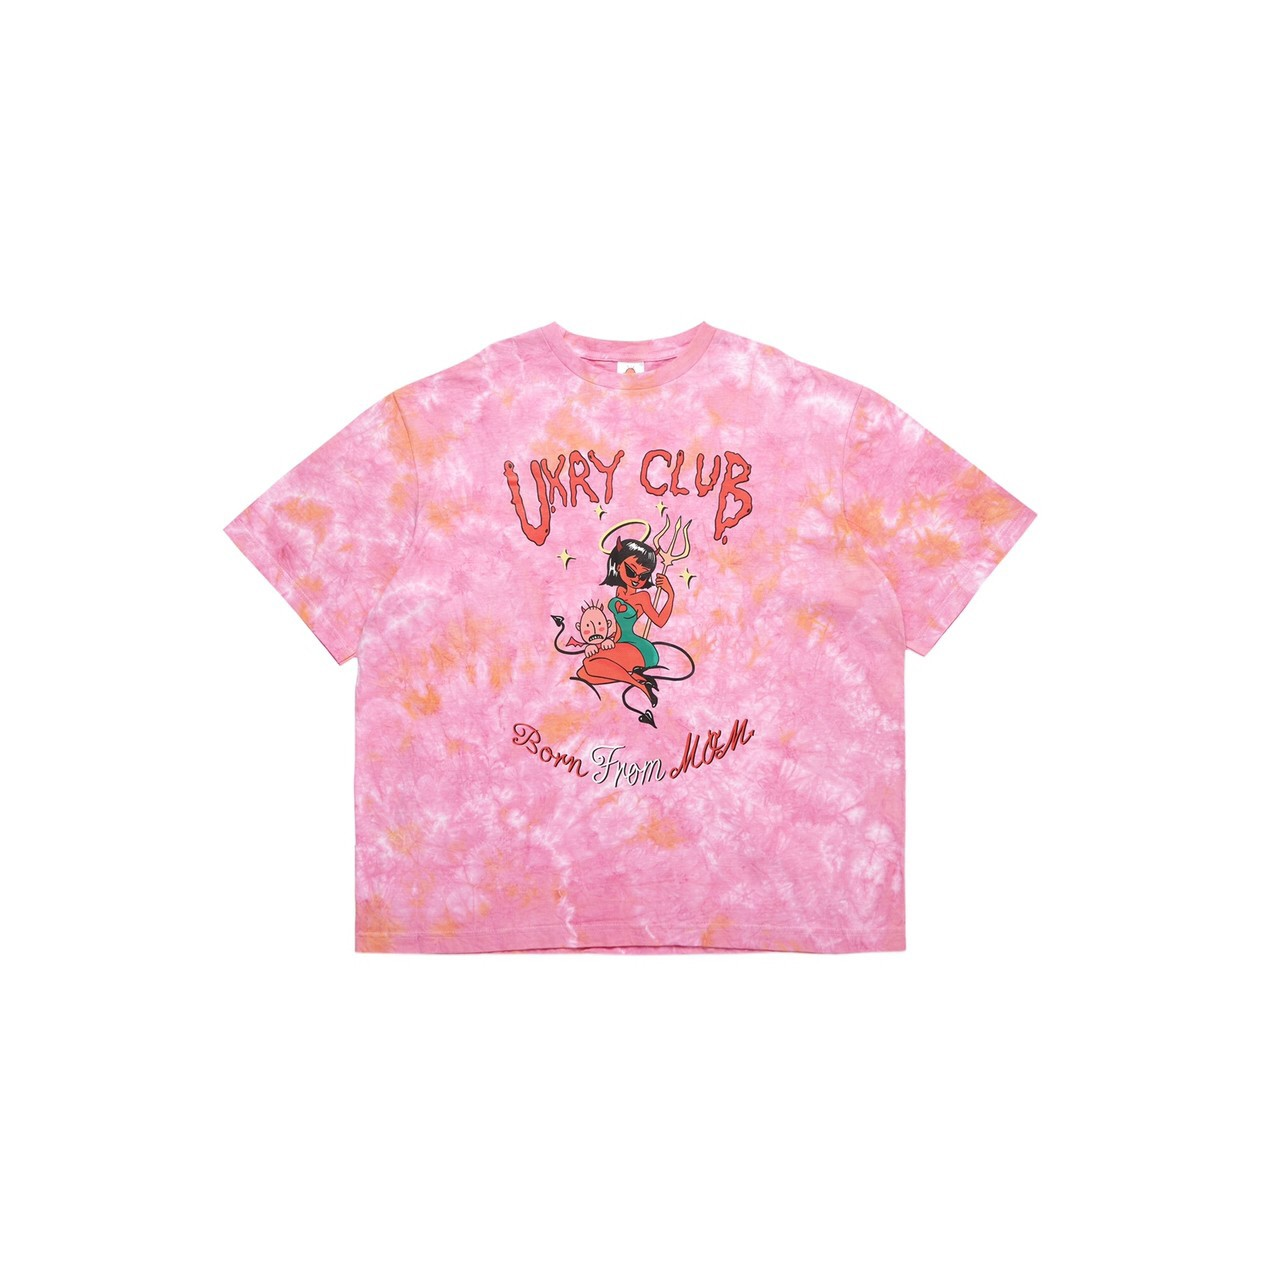 UXRY CLUB IMOTO TIE DYE RELAXED TEE PINK